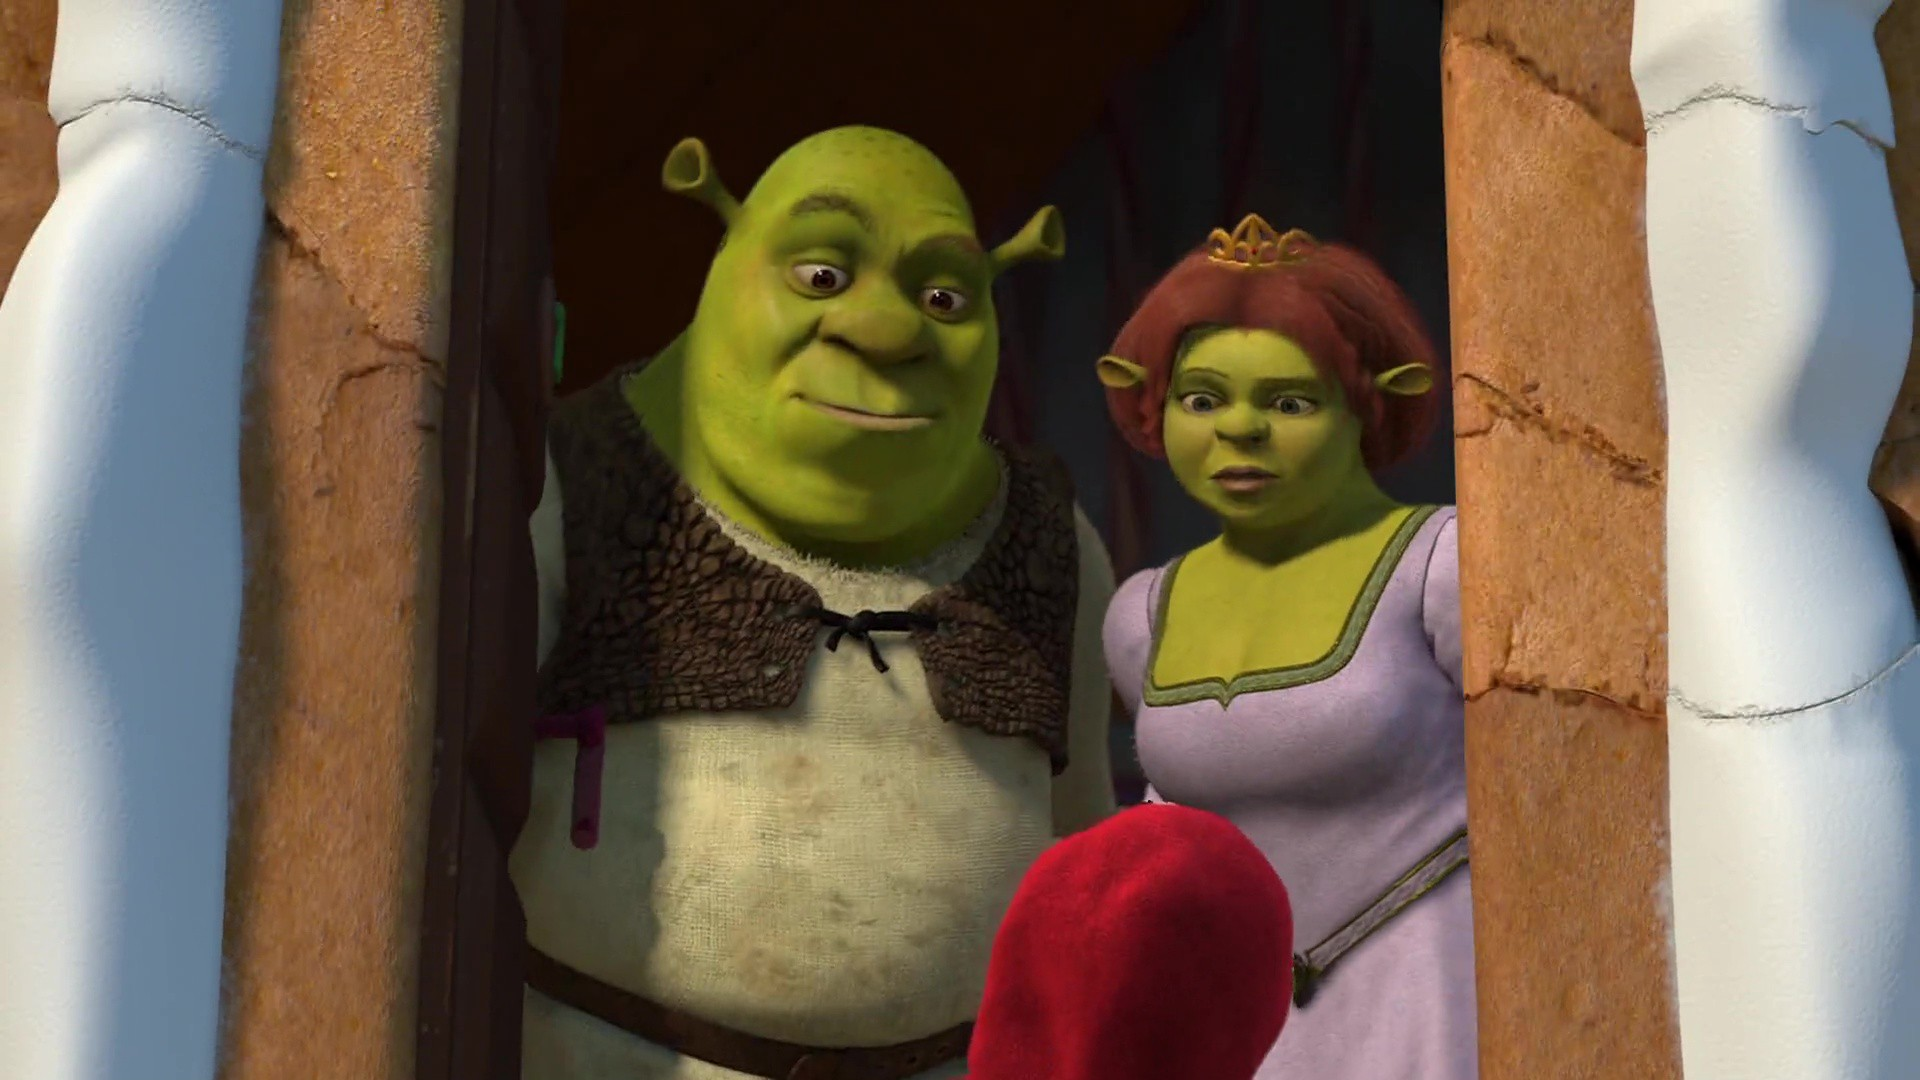 a sociological interpretation of the movie shrek As you may know, disney has a movie coming out later this year called the princess and the frog, a retelling of the story of the princess who kisses a frog that then helpfully turns into a handsome prince for her to marry the noteworthy aspect of this film, aimed at a mainstream audience, is.